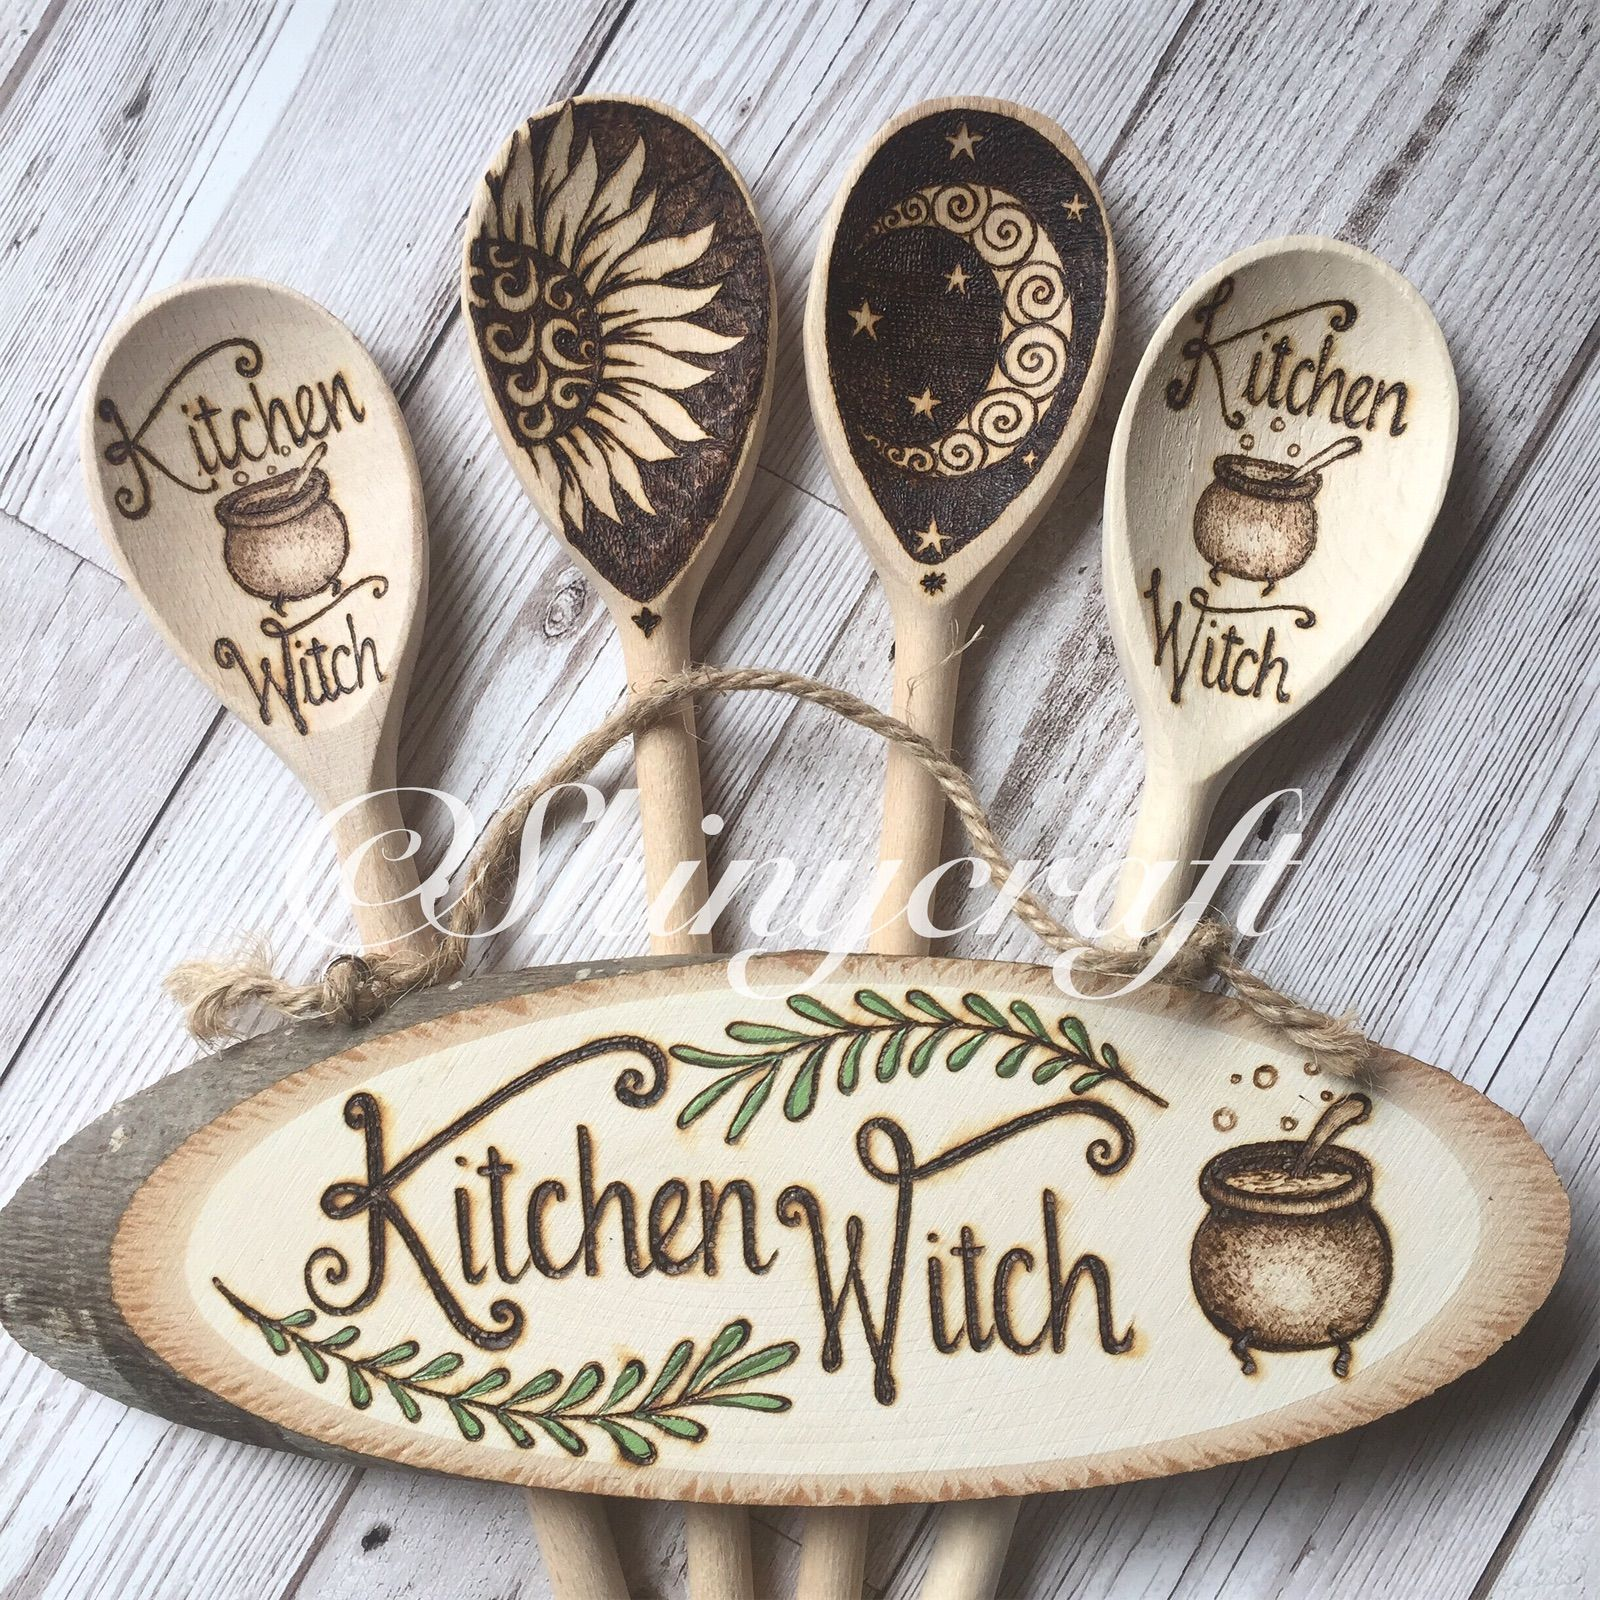 Pyrography Wooden Chopping Board Witch Cook Wicca  Kitchen Witchery Handburned with a cauldron and Kitchen Witch quote